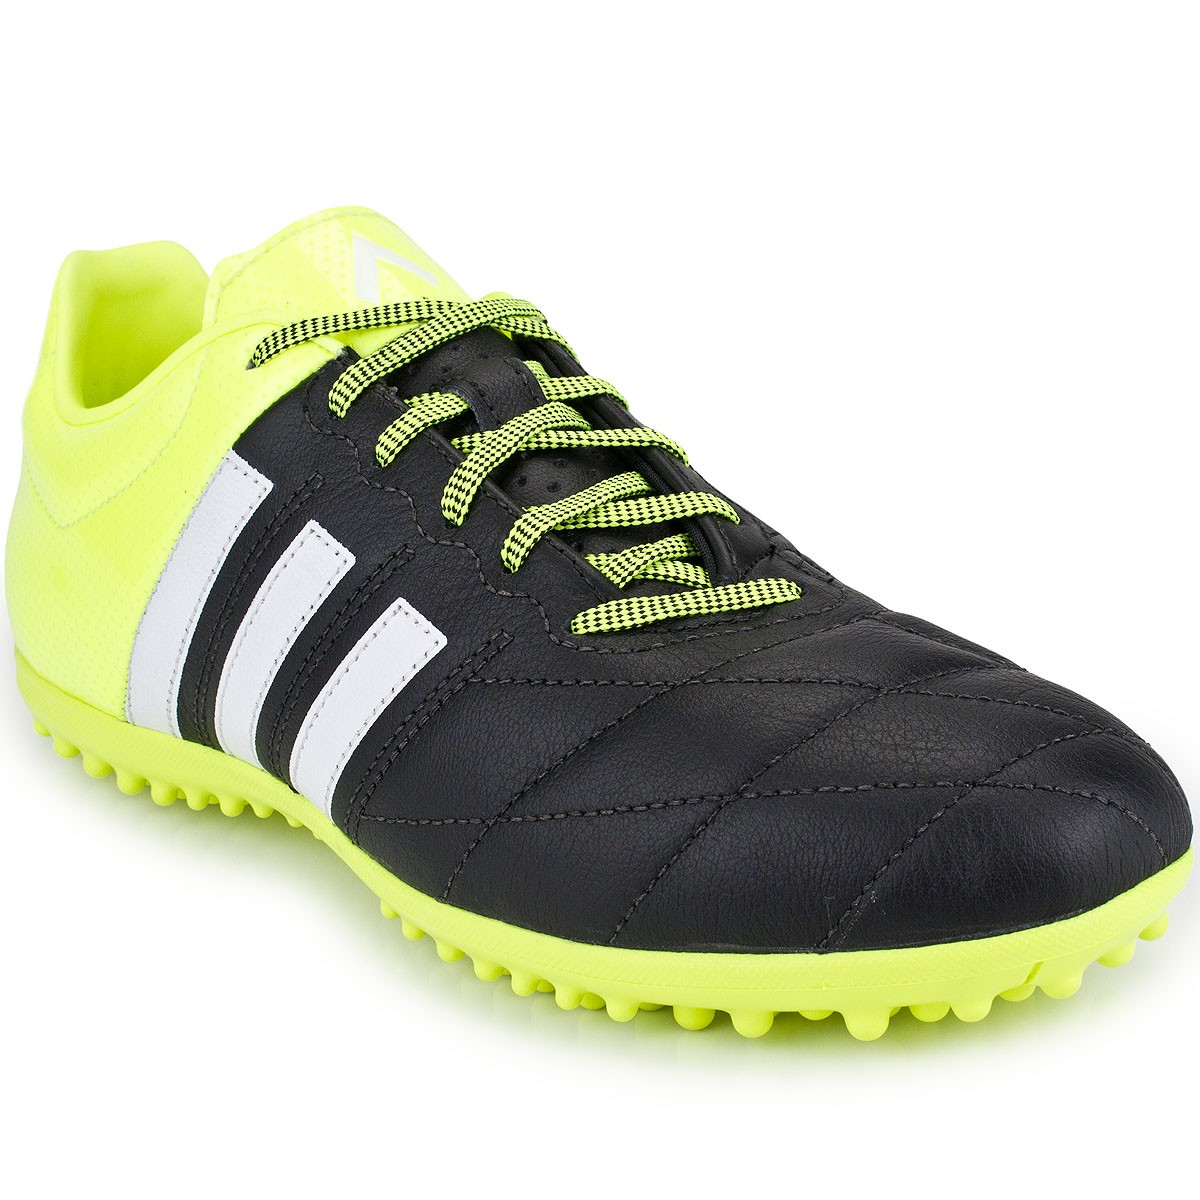 00b5d5c2075b0 Chuteira Adidas Ace 15.3 TF Leather | Futebol Society | MaxTennis